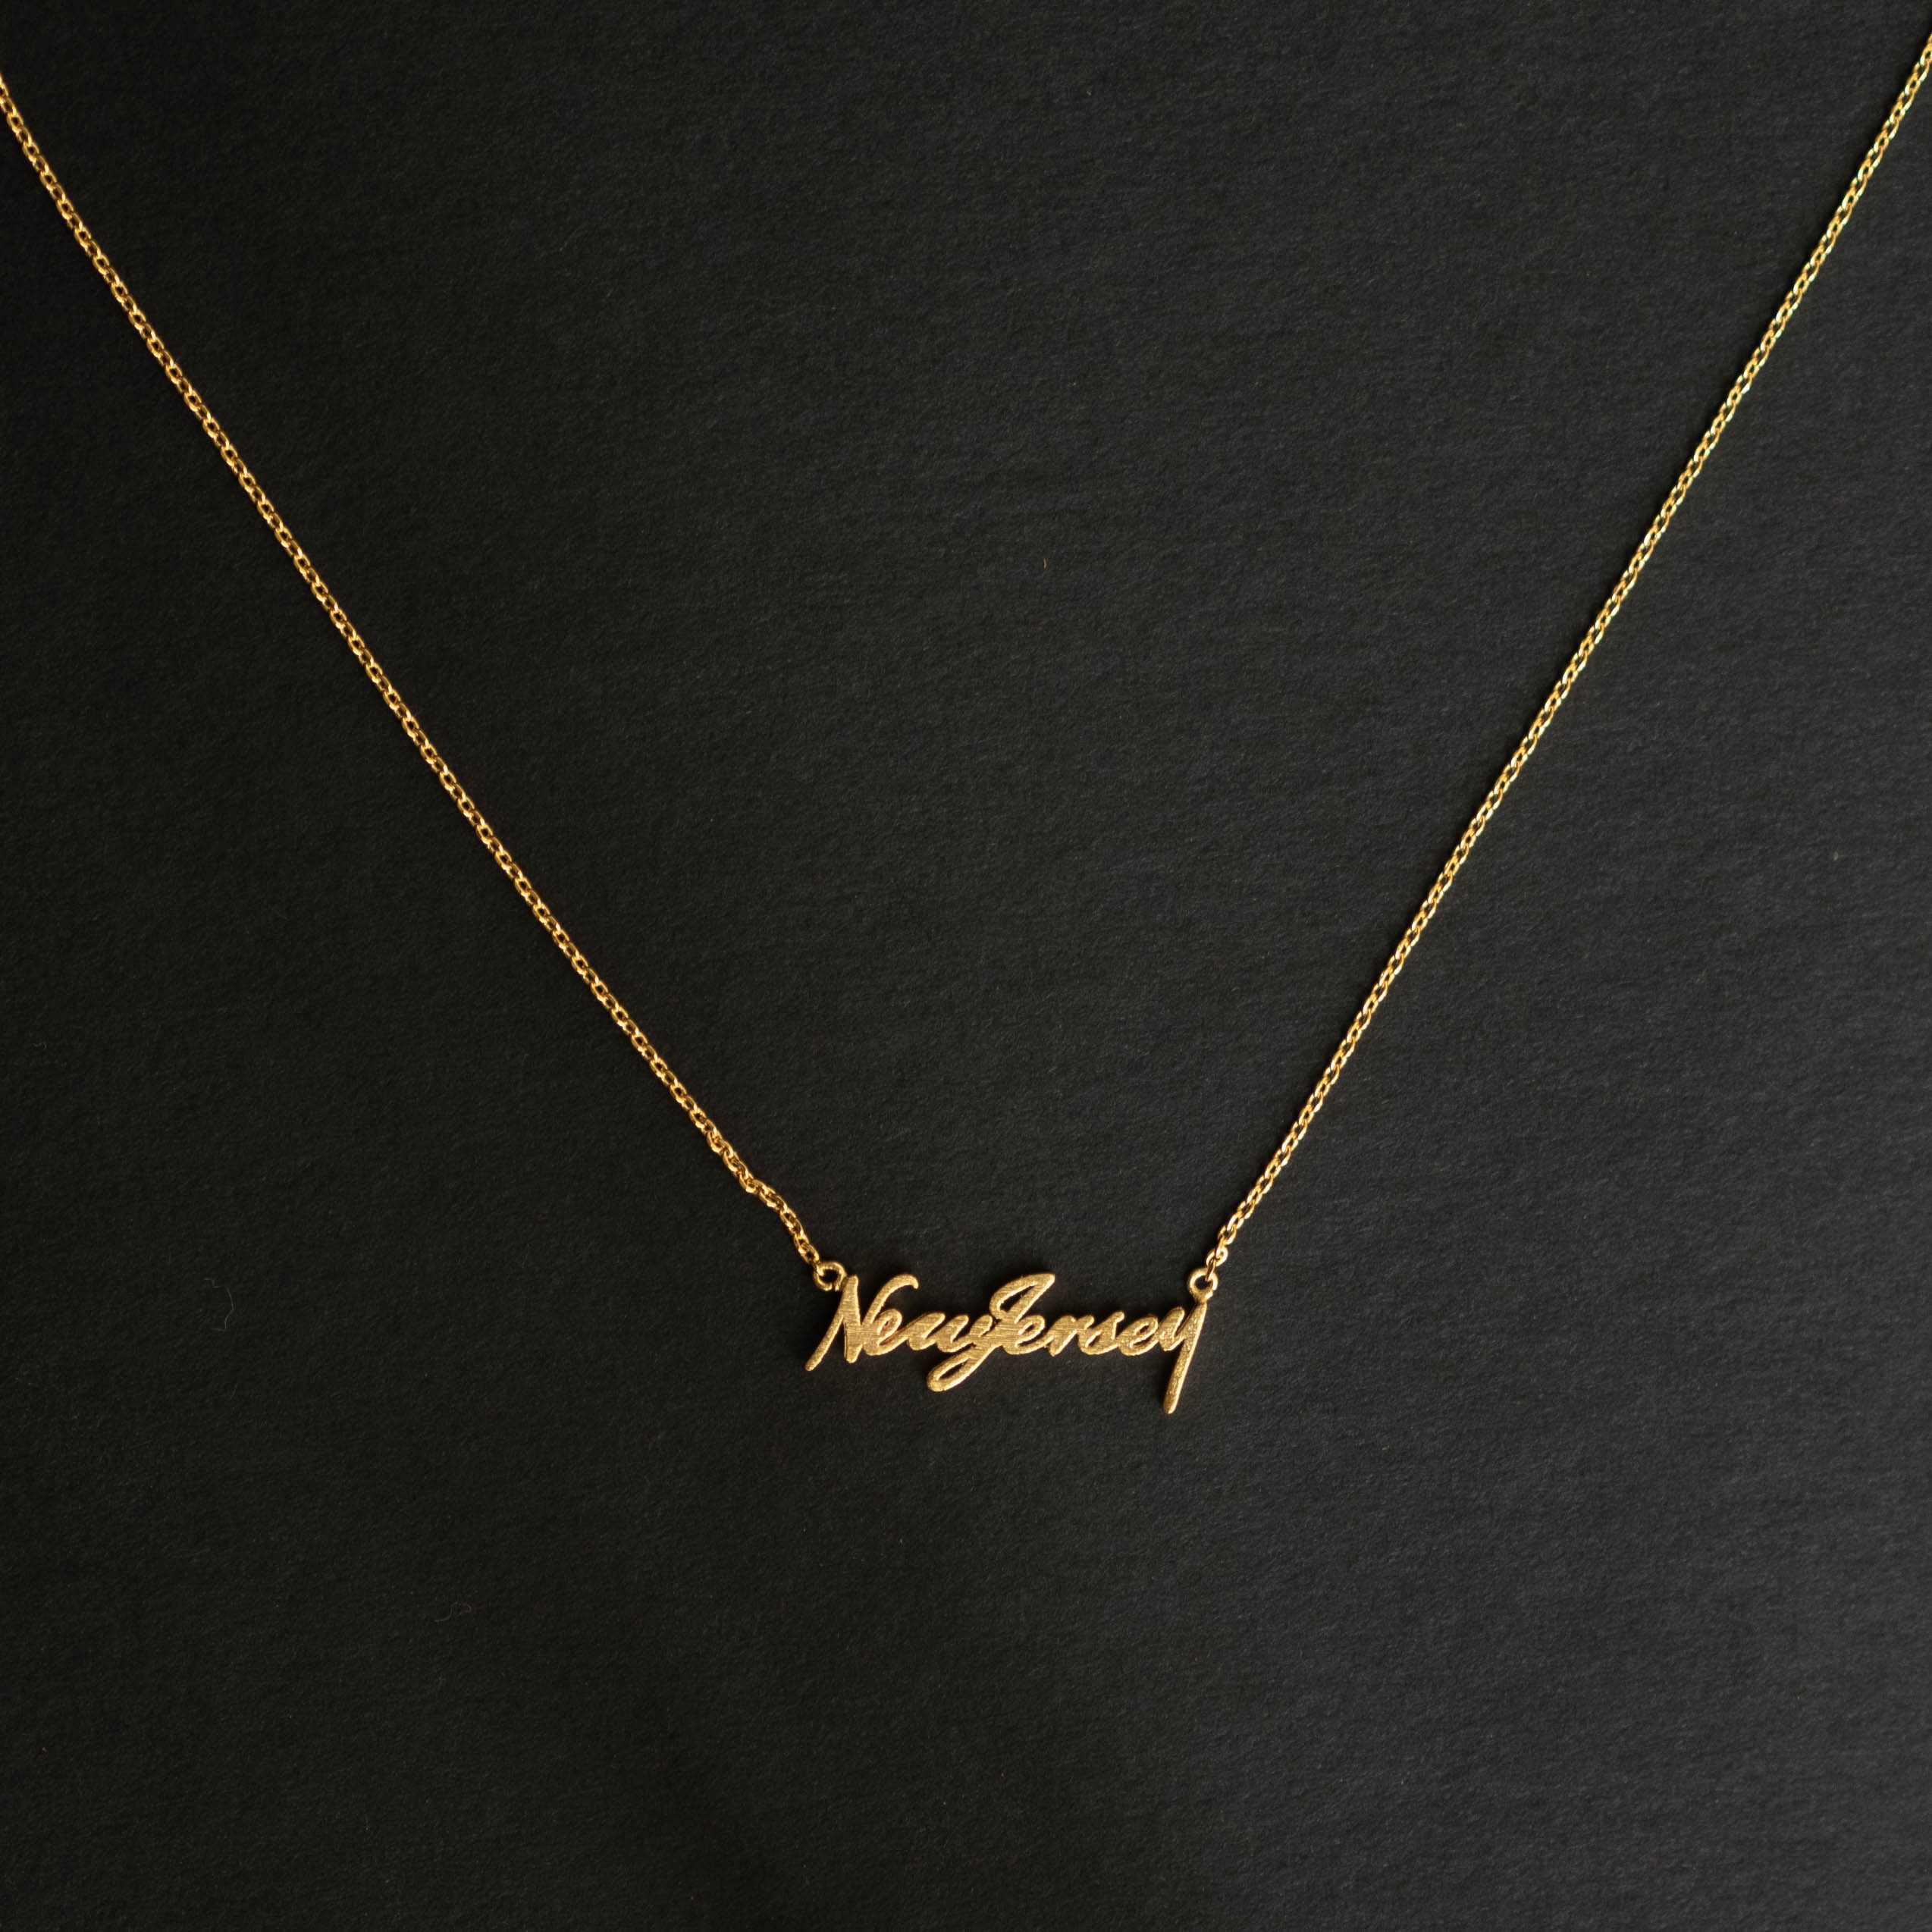 New Jersey Script Necklace